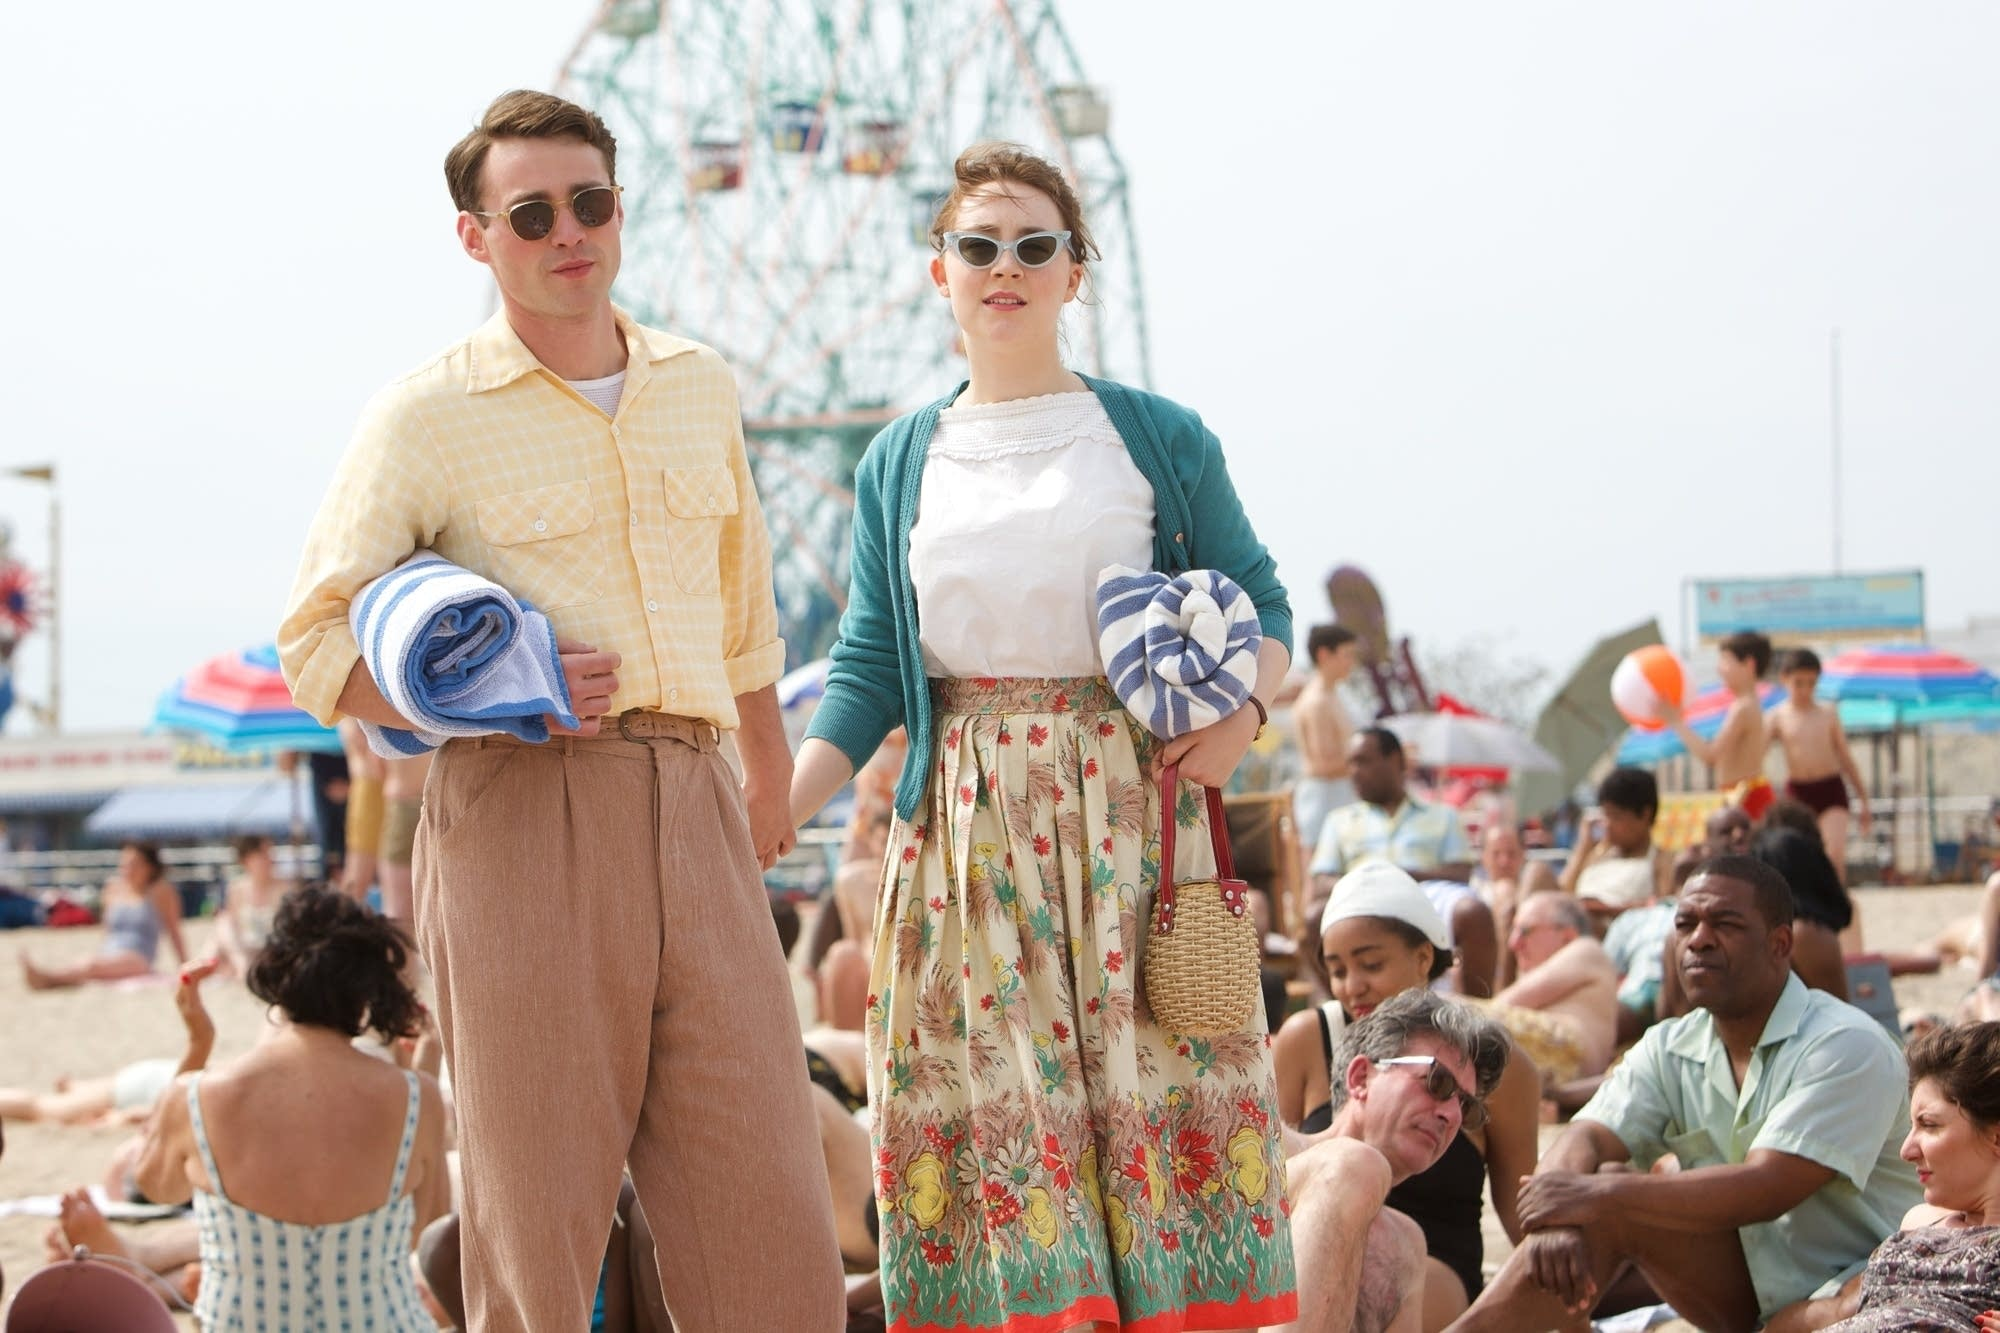 Emory Cohen and Saoirse Ronan in 'Brooklyn'